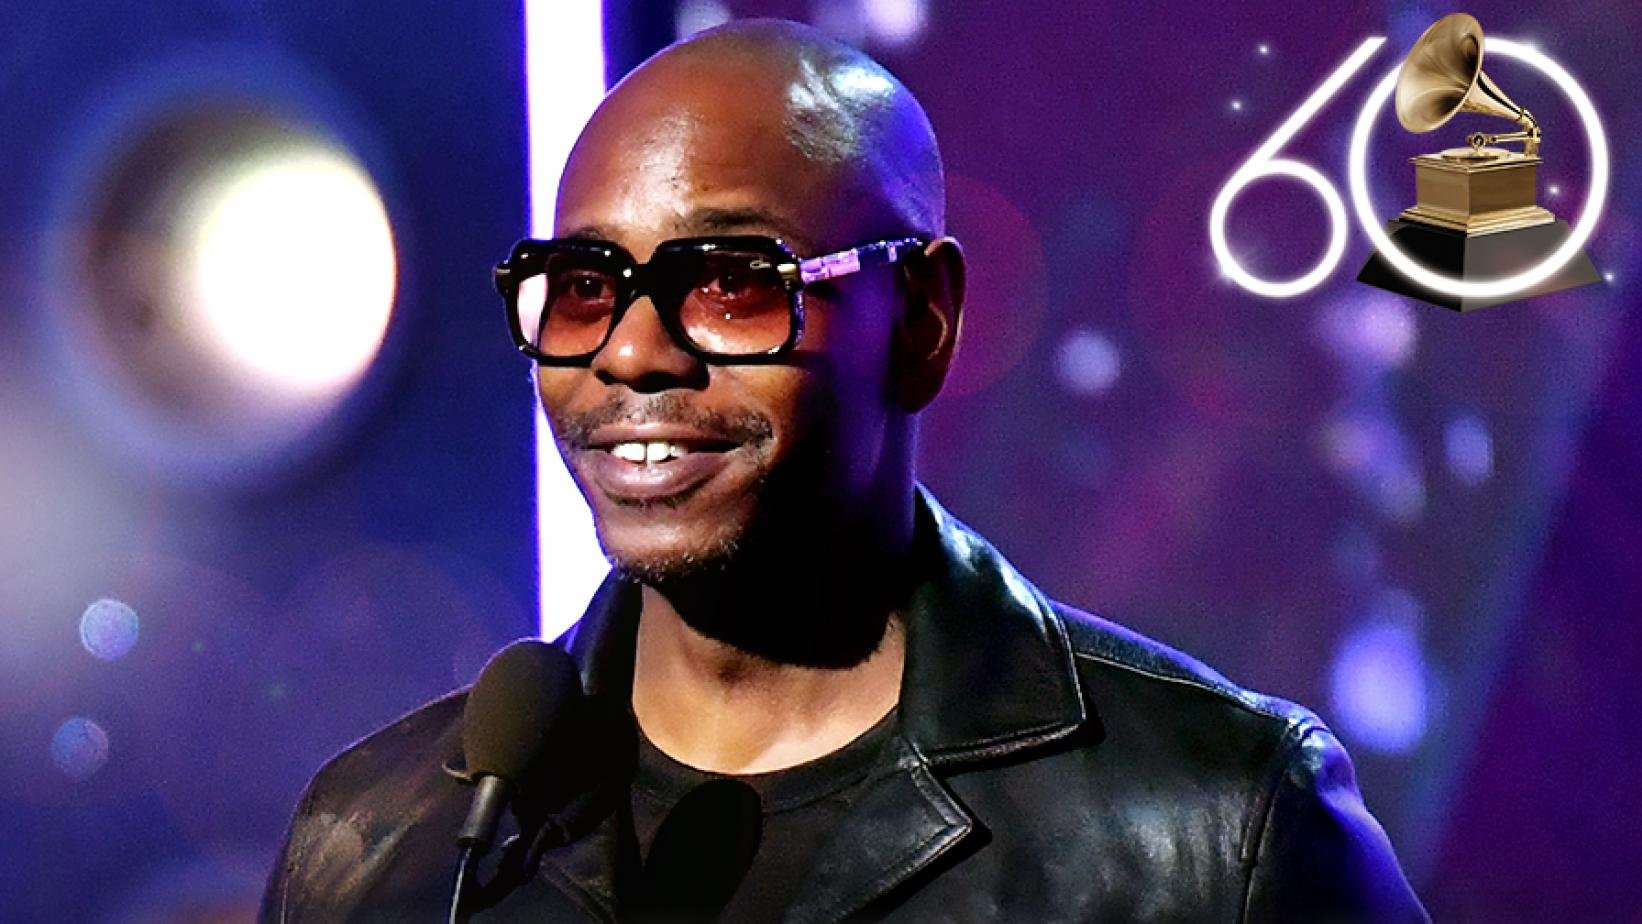 Dave Chappelle at the 60th GRAMMY Awards